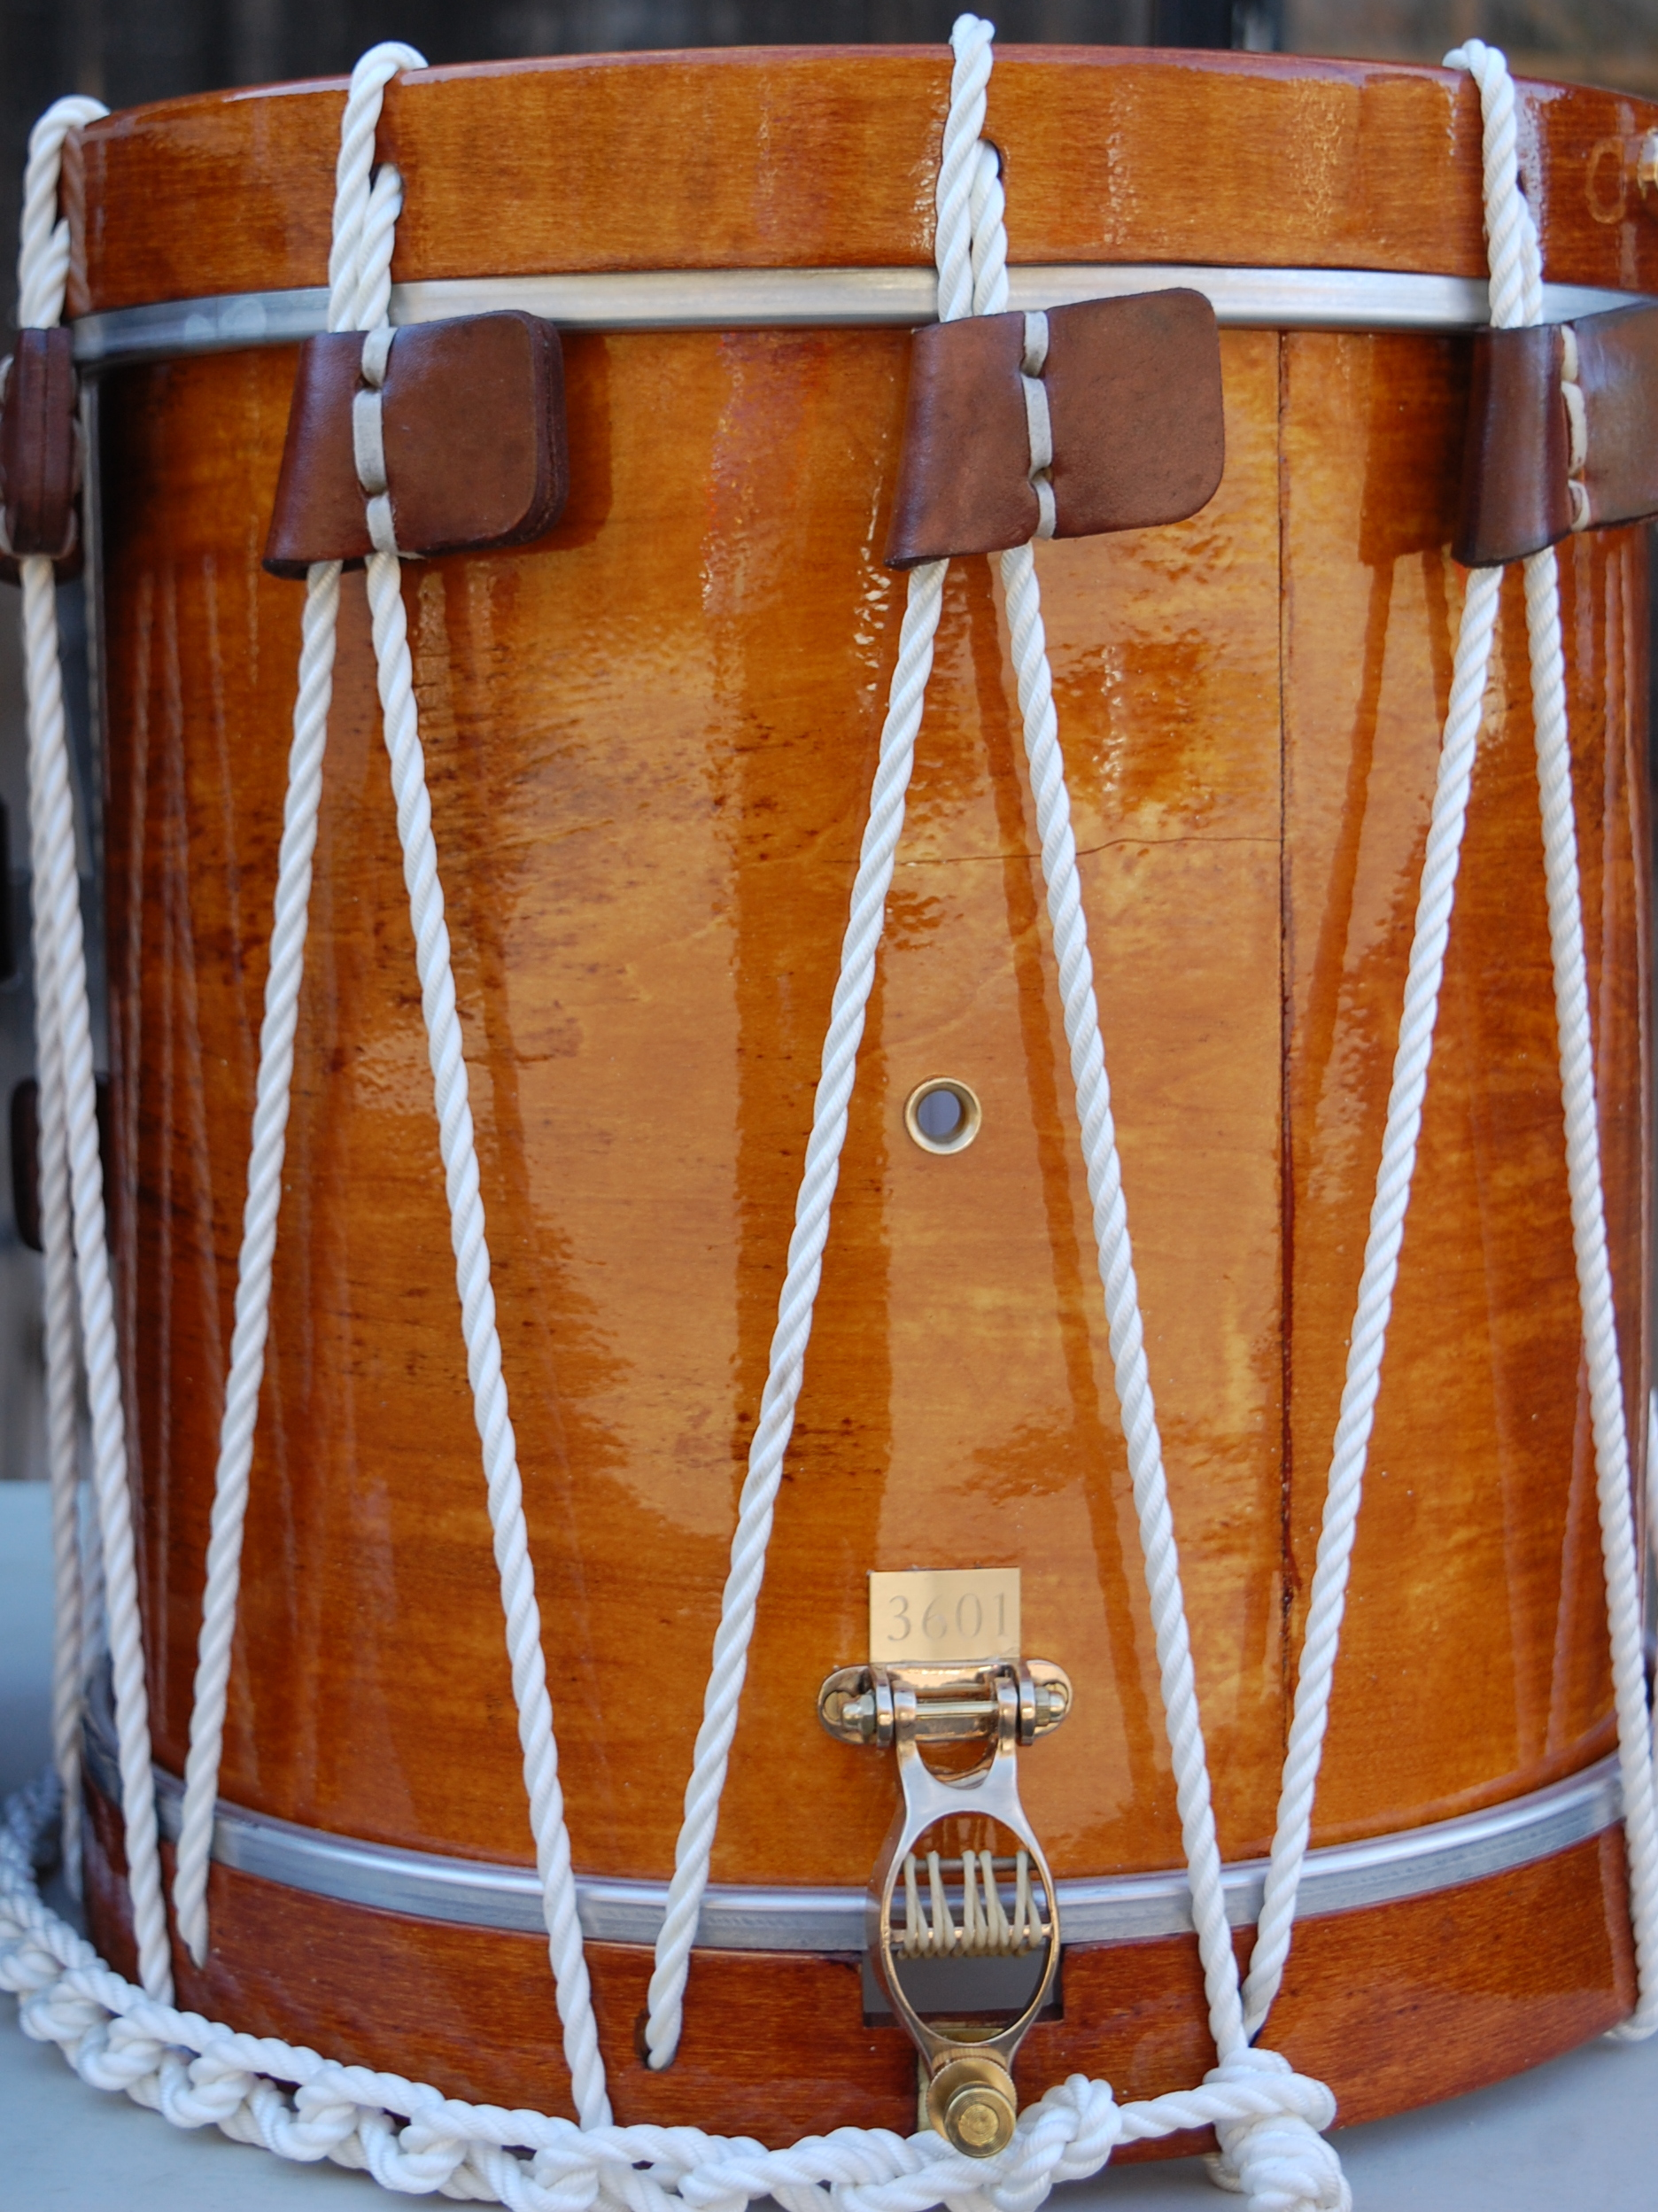 Special Offers Rope Tension Drums Cooperman Fife And Snare Drum Diagram Liberty 3601 Second